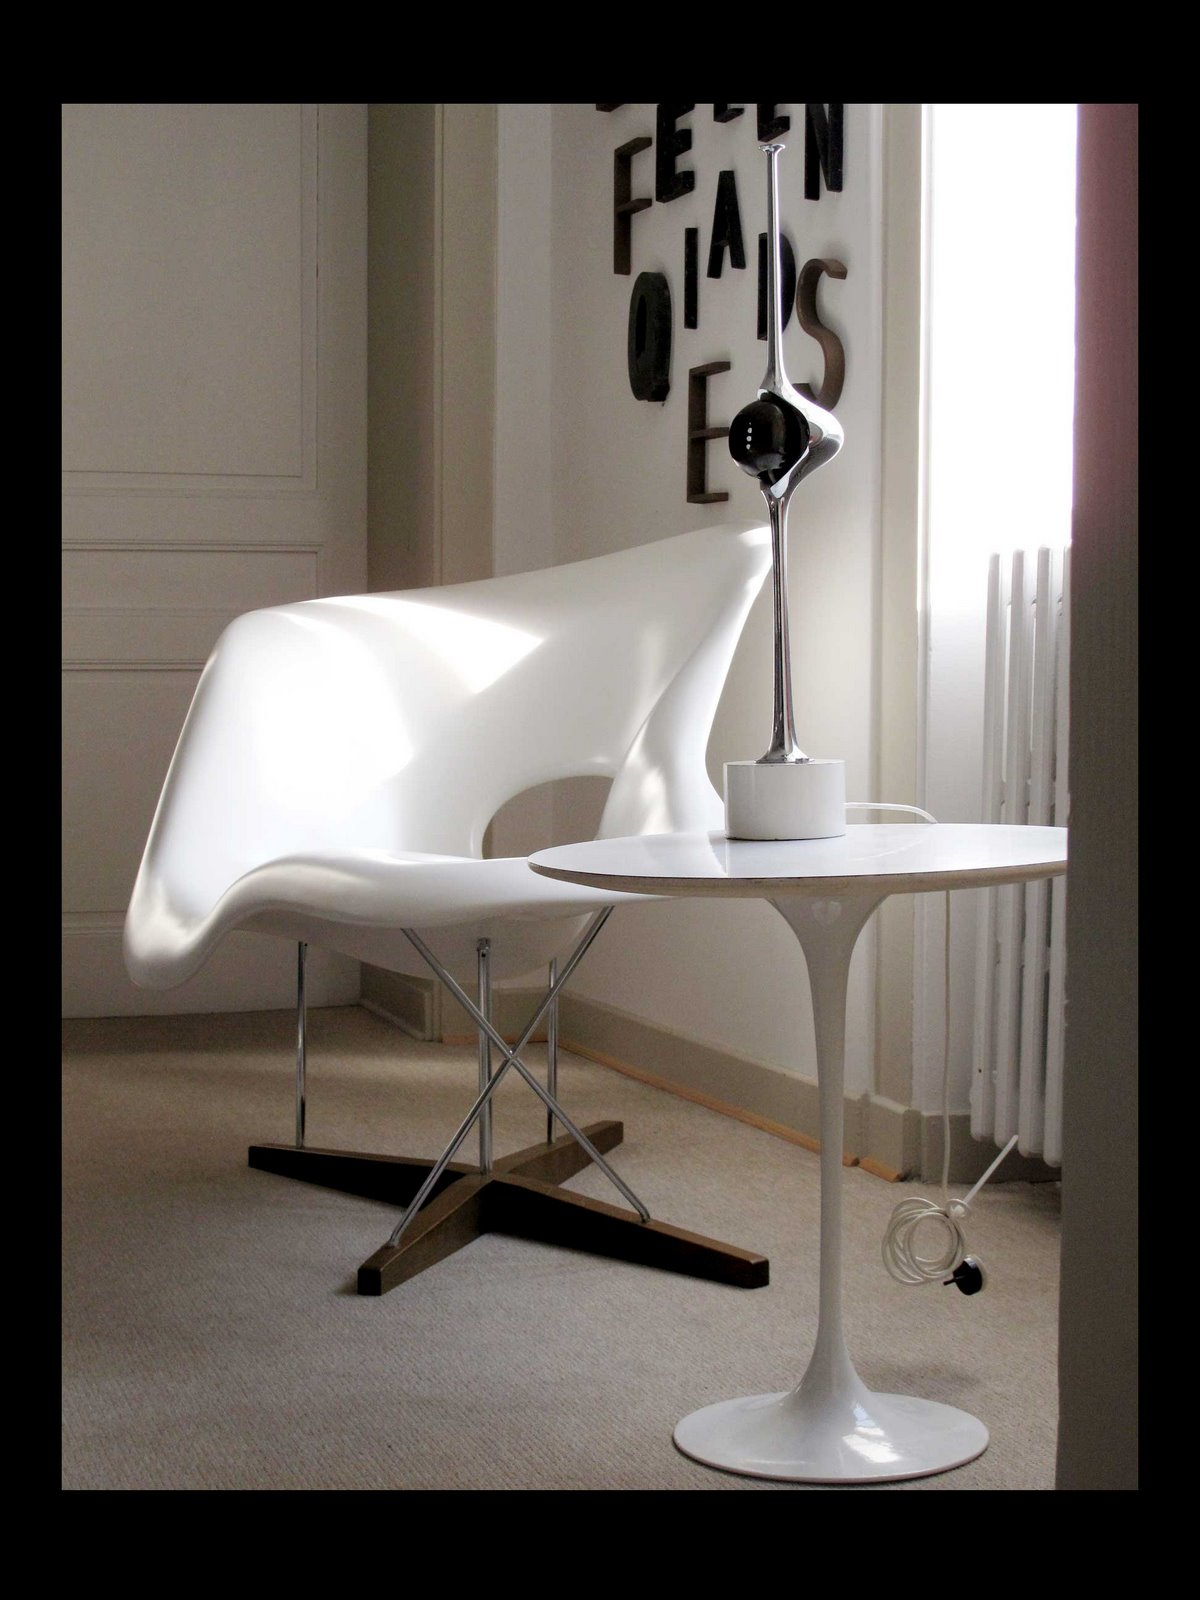 Vitra Eames Chair La Chaise ~ Sculpture, Chaise Lounge, Chair | All Roads